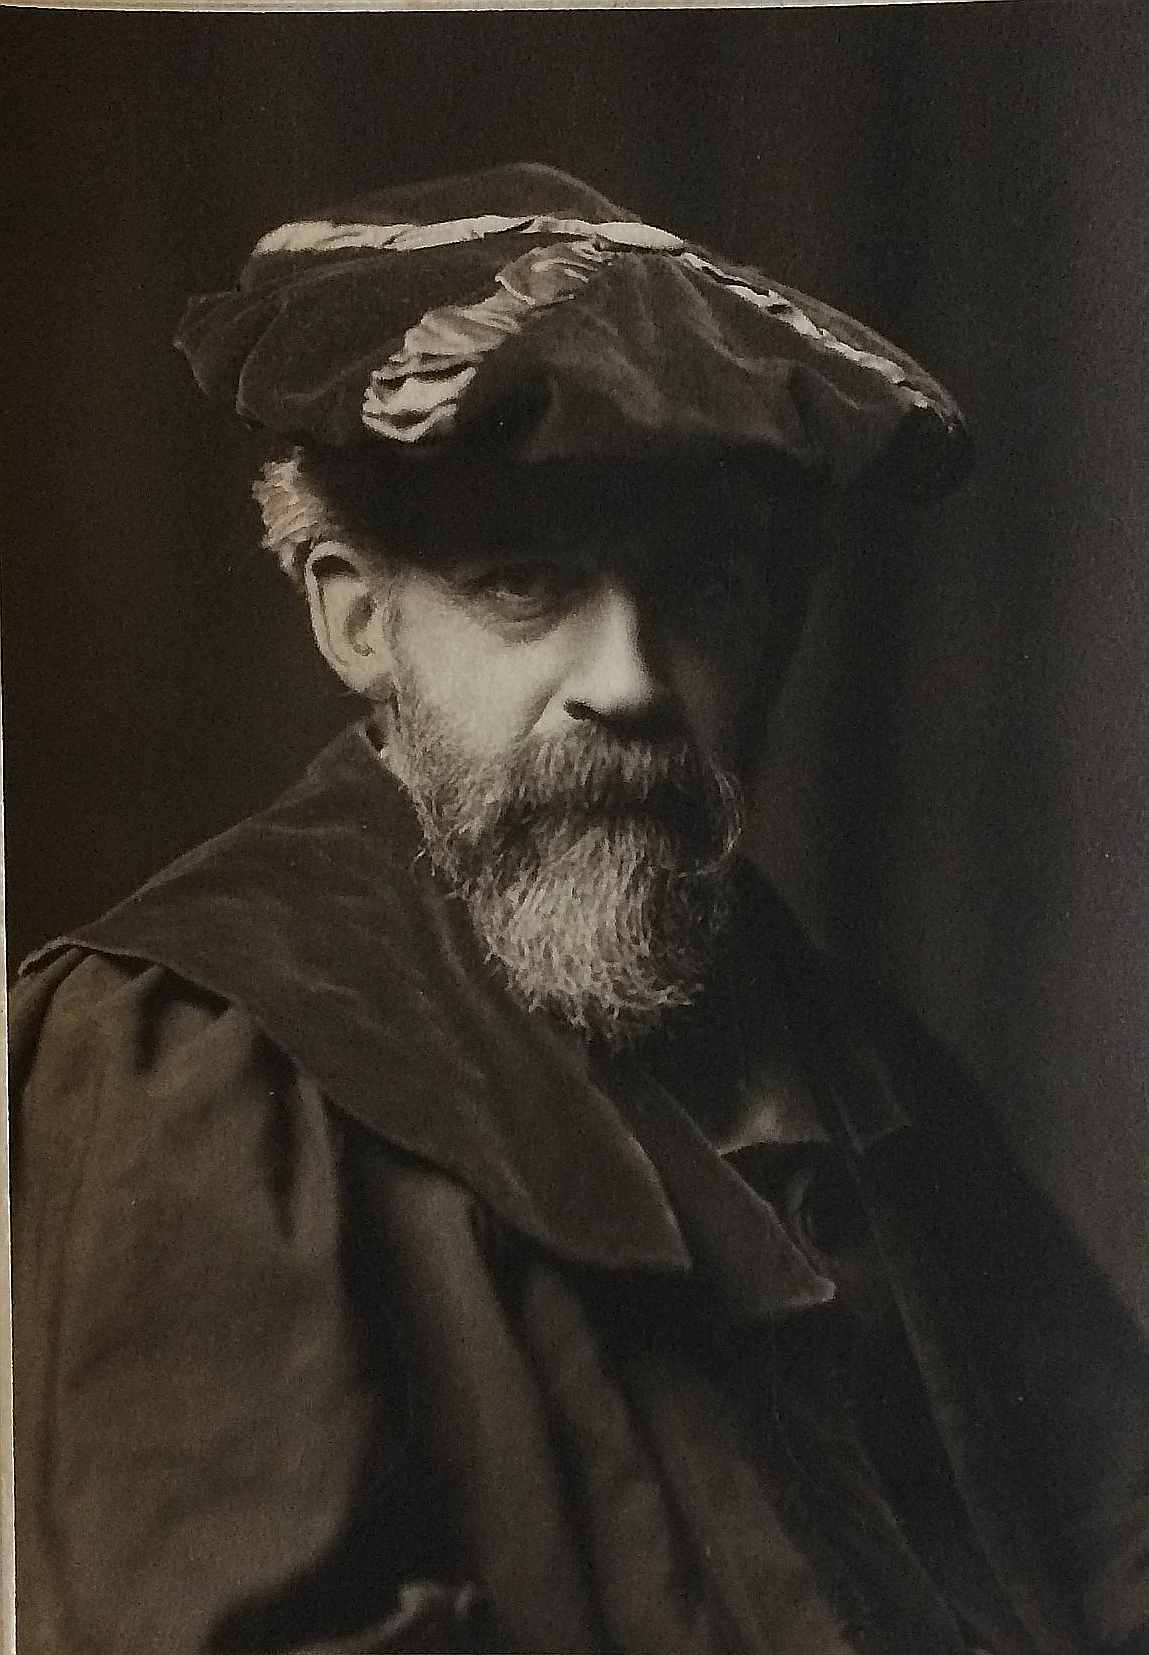 Photograph of Patrick Geddes, aged 59, in doctoral robes. c.1913